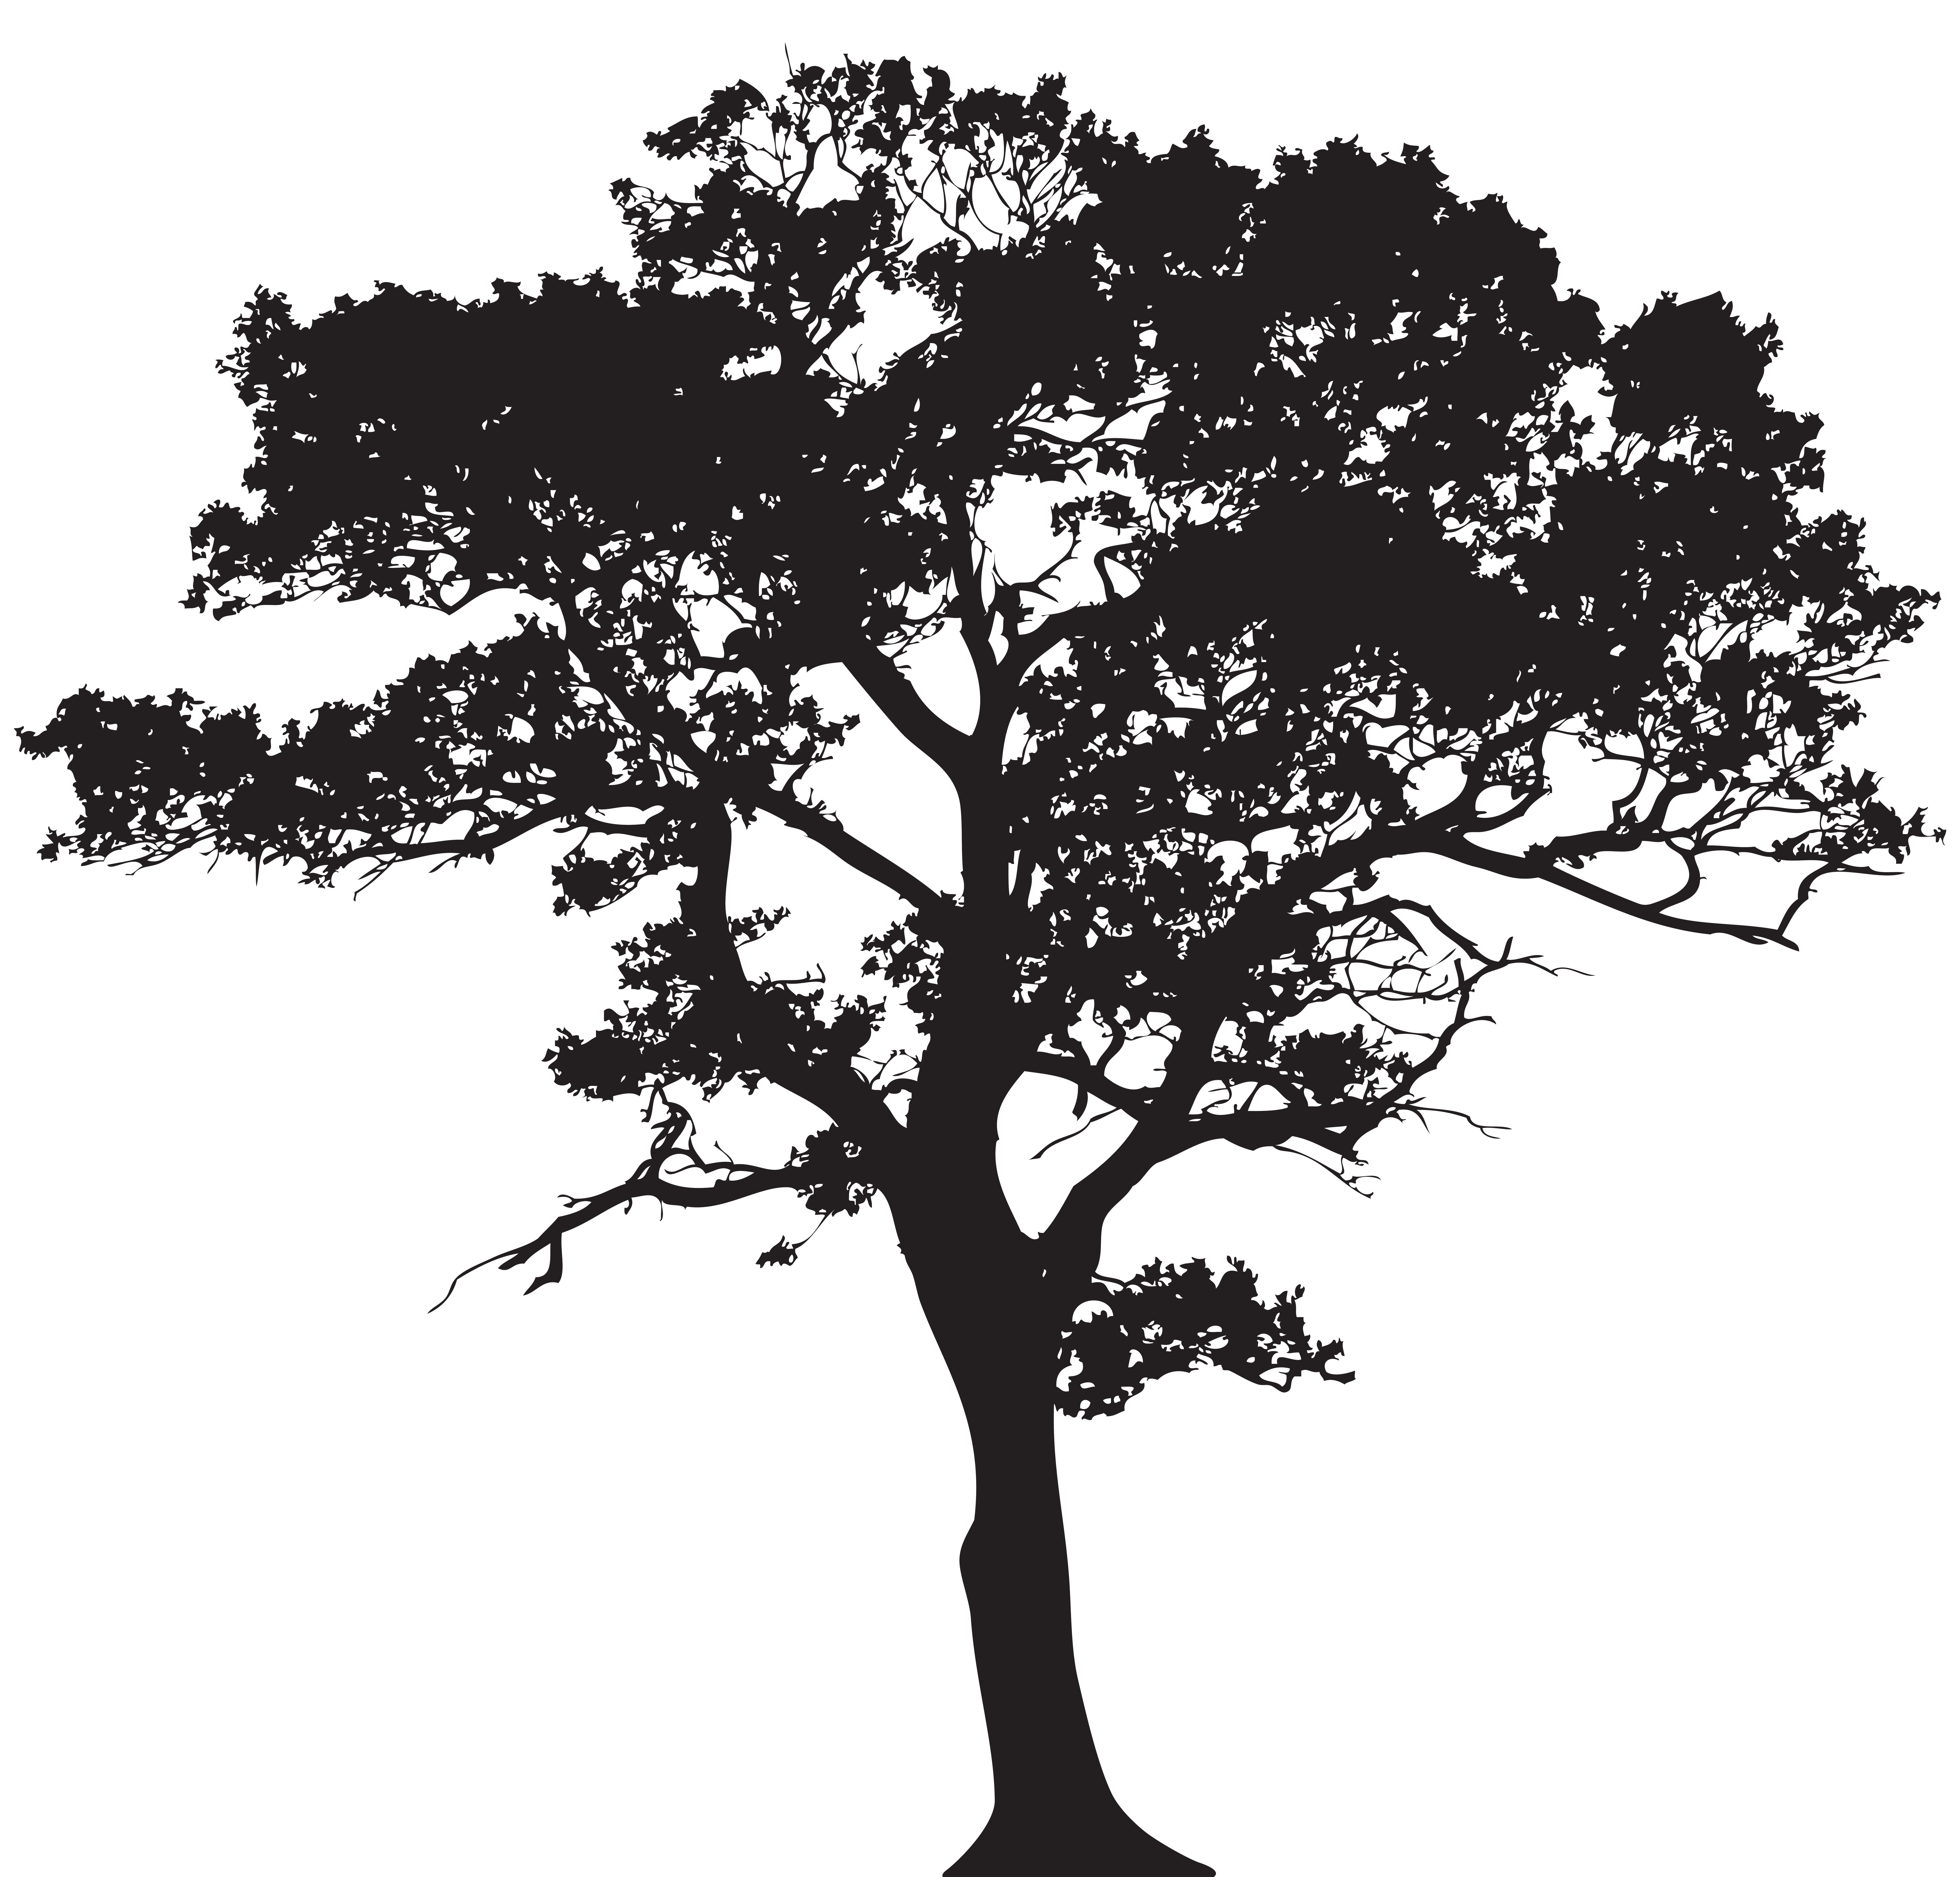 Free vector tree clipart clip black and white stock silhouette tree clipart free vector tree silhouettes clip art 111545 ... clip black and white stock